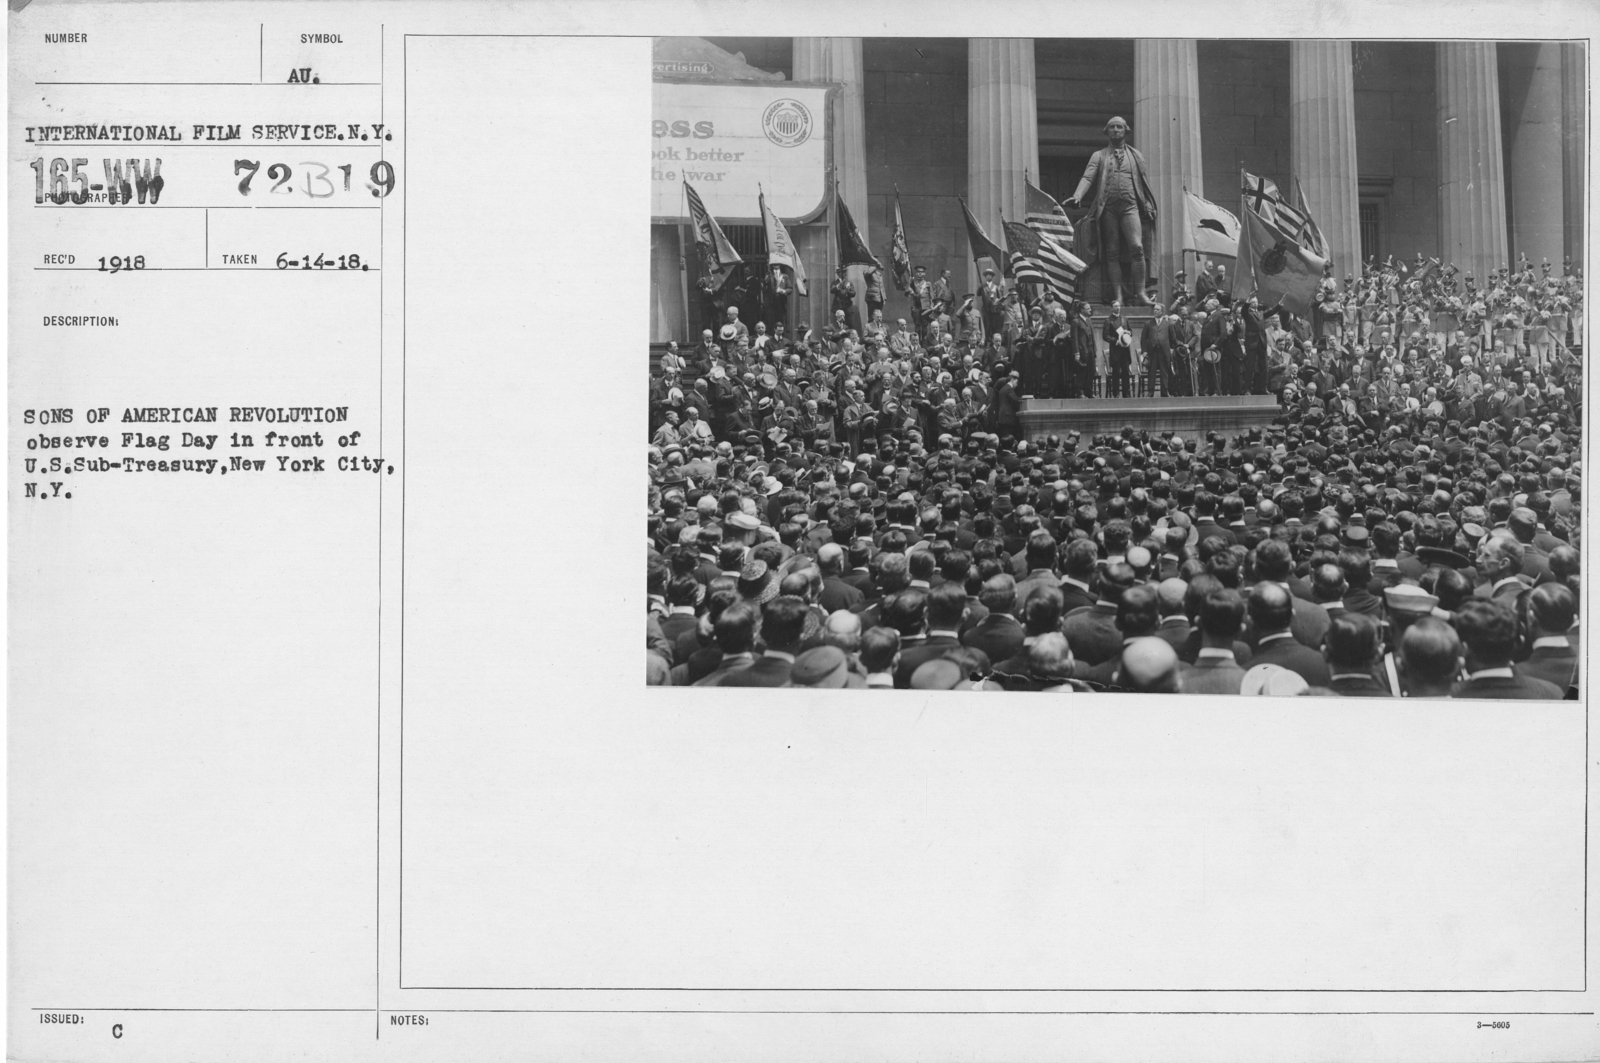 Ceremonies - Flag Day, 1918 - Sons of American Revolution observe Flag Day in front of U.S. Sub-Treasury, New York city, N.Y